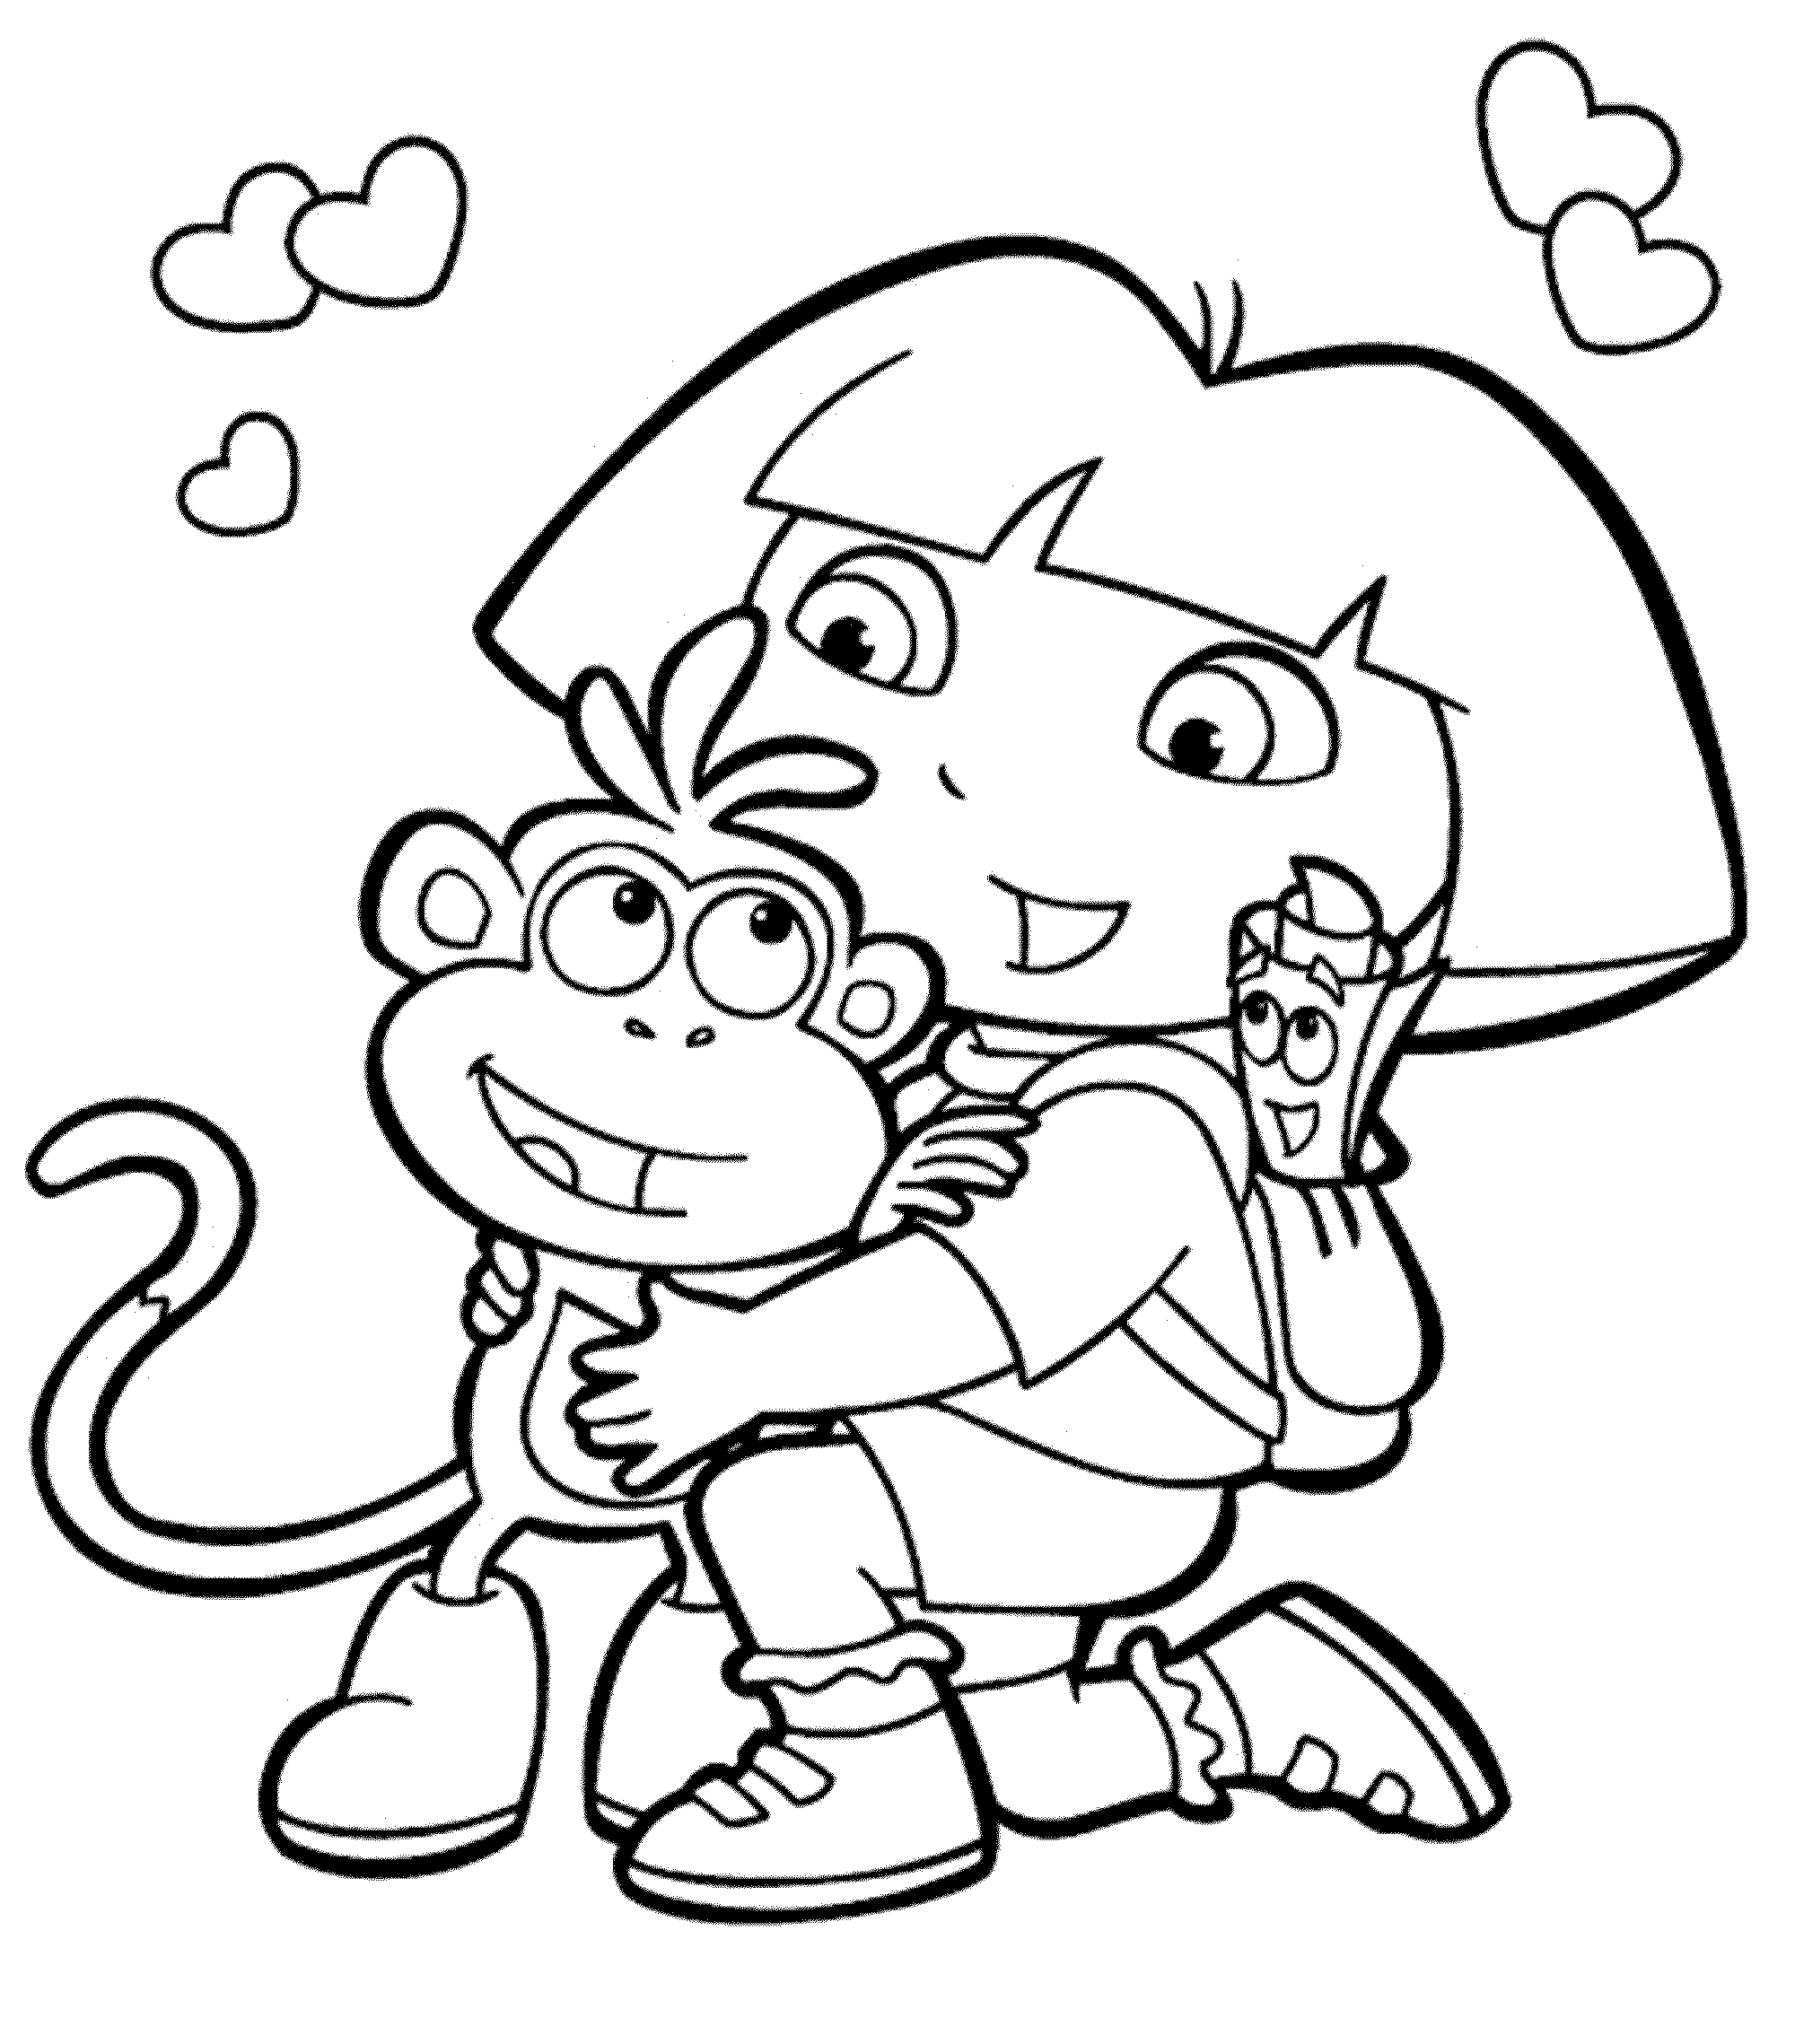 Free Printable Diego Coloring Pages For Kids | 2278x2000